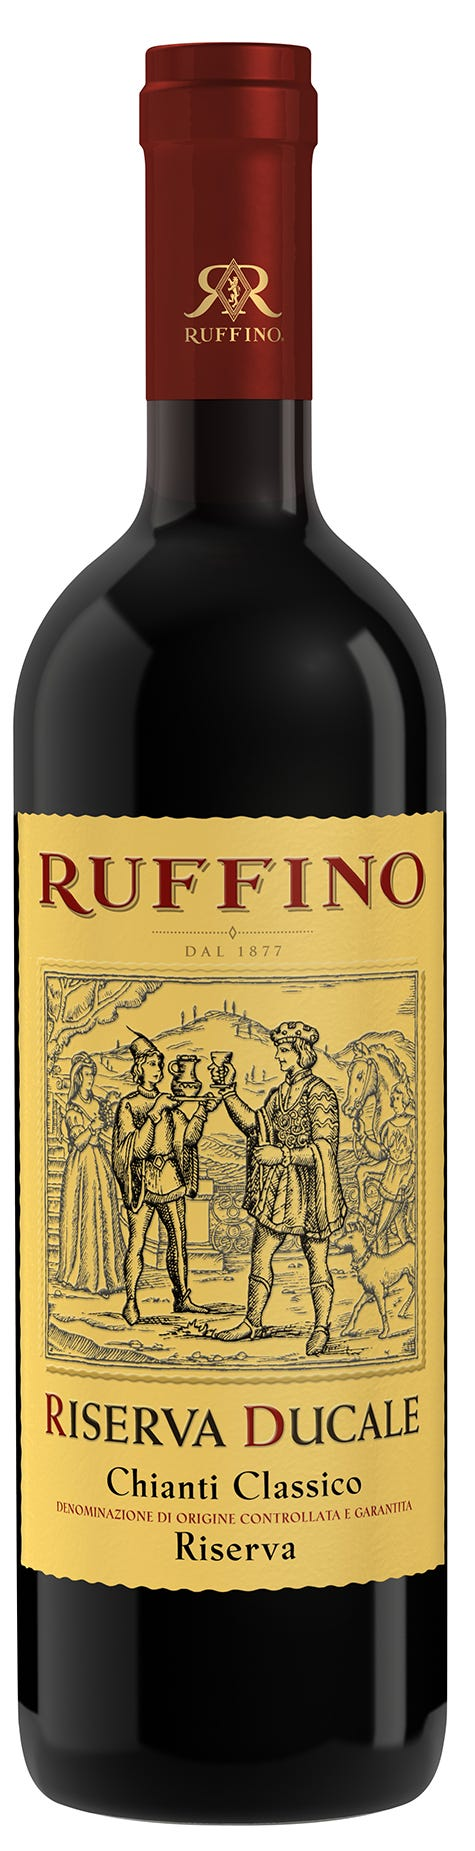 Ruffino Riserva Ducale's Chianti Classico is a wine preferred by the, uh, family.